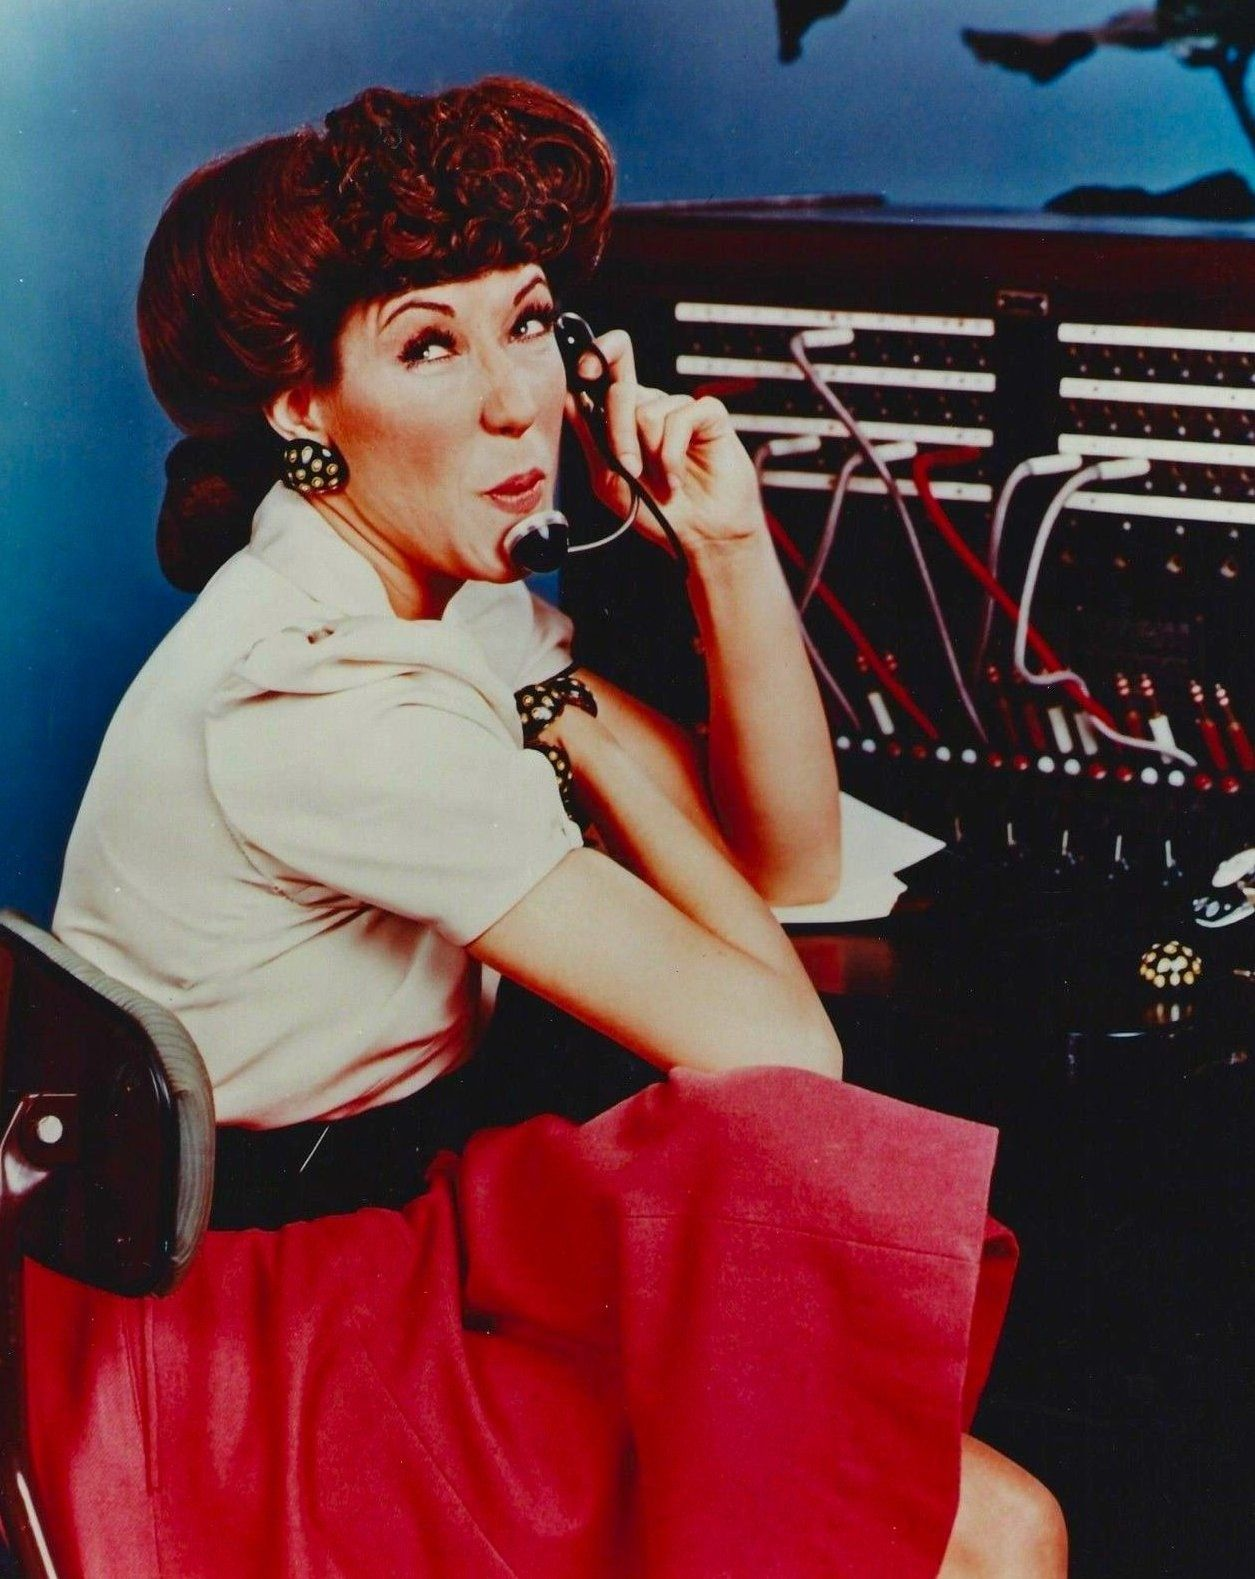 Ernestine the Operator ...Lily Tomlin....One ringy dingy....snort snort. She was another extremely funny lady...loved all of her characters.